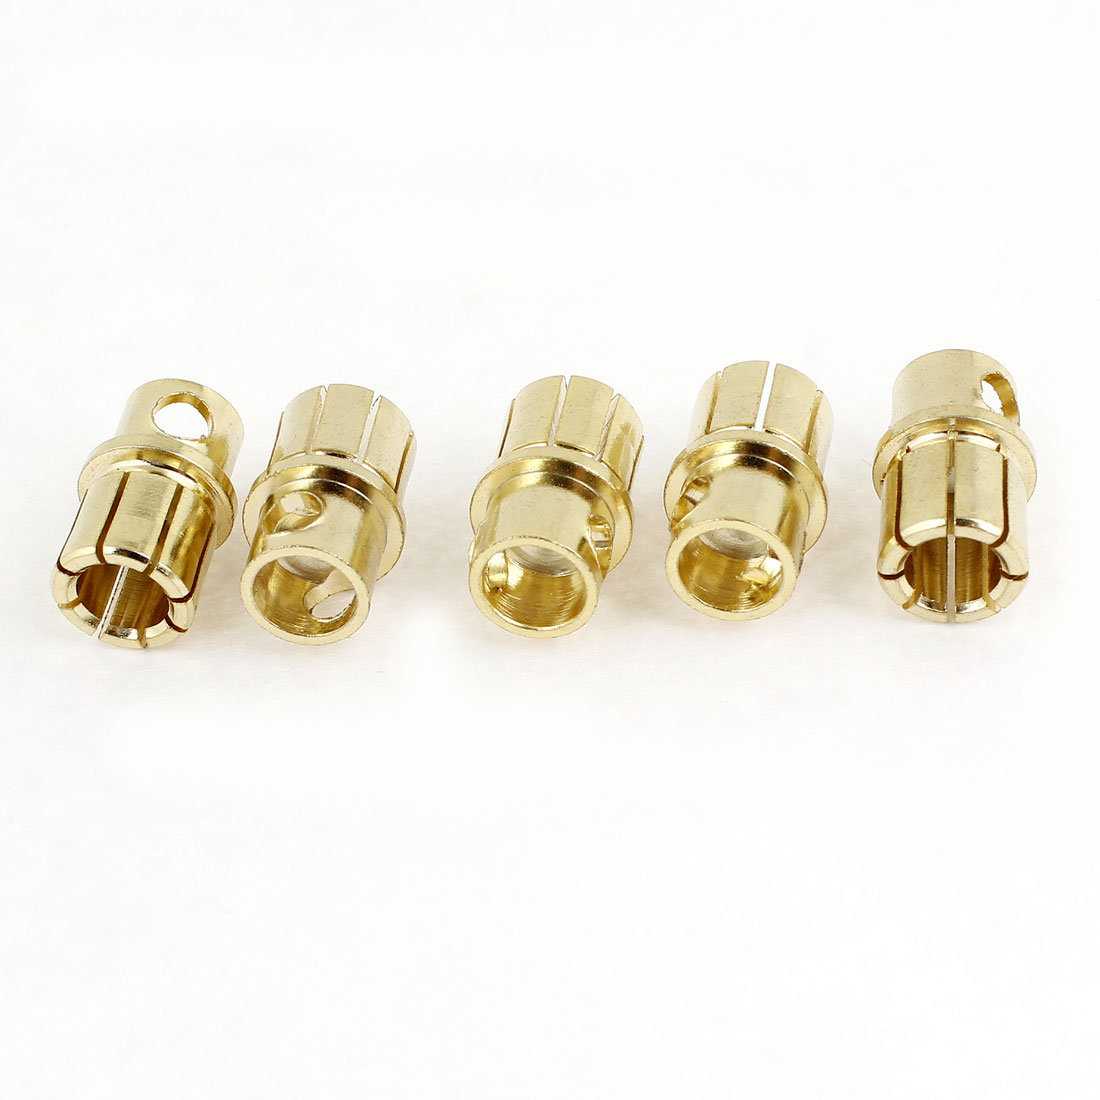 RC Model Toys 5mm Inside Dia Banana Plug Bullet Male Connector 5 Pieces